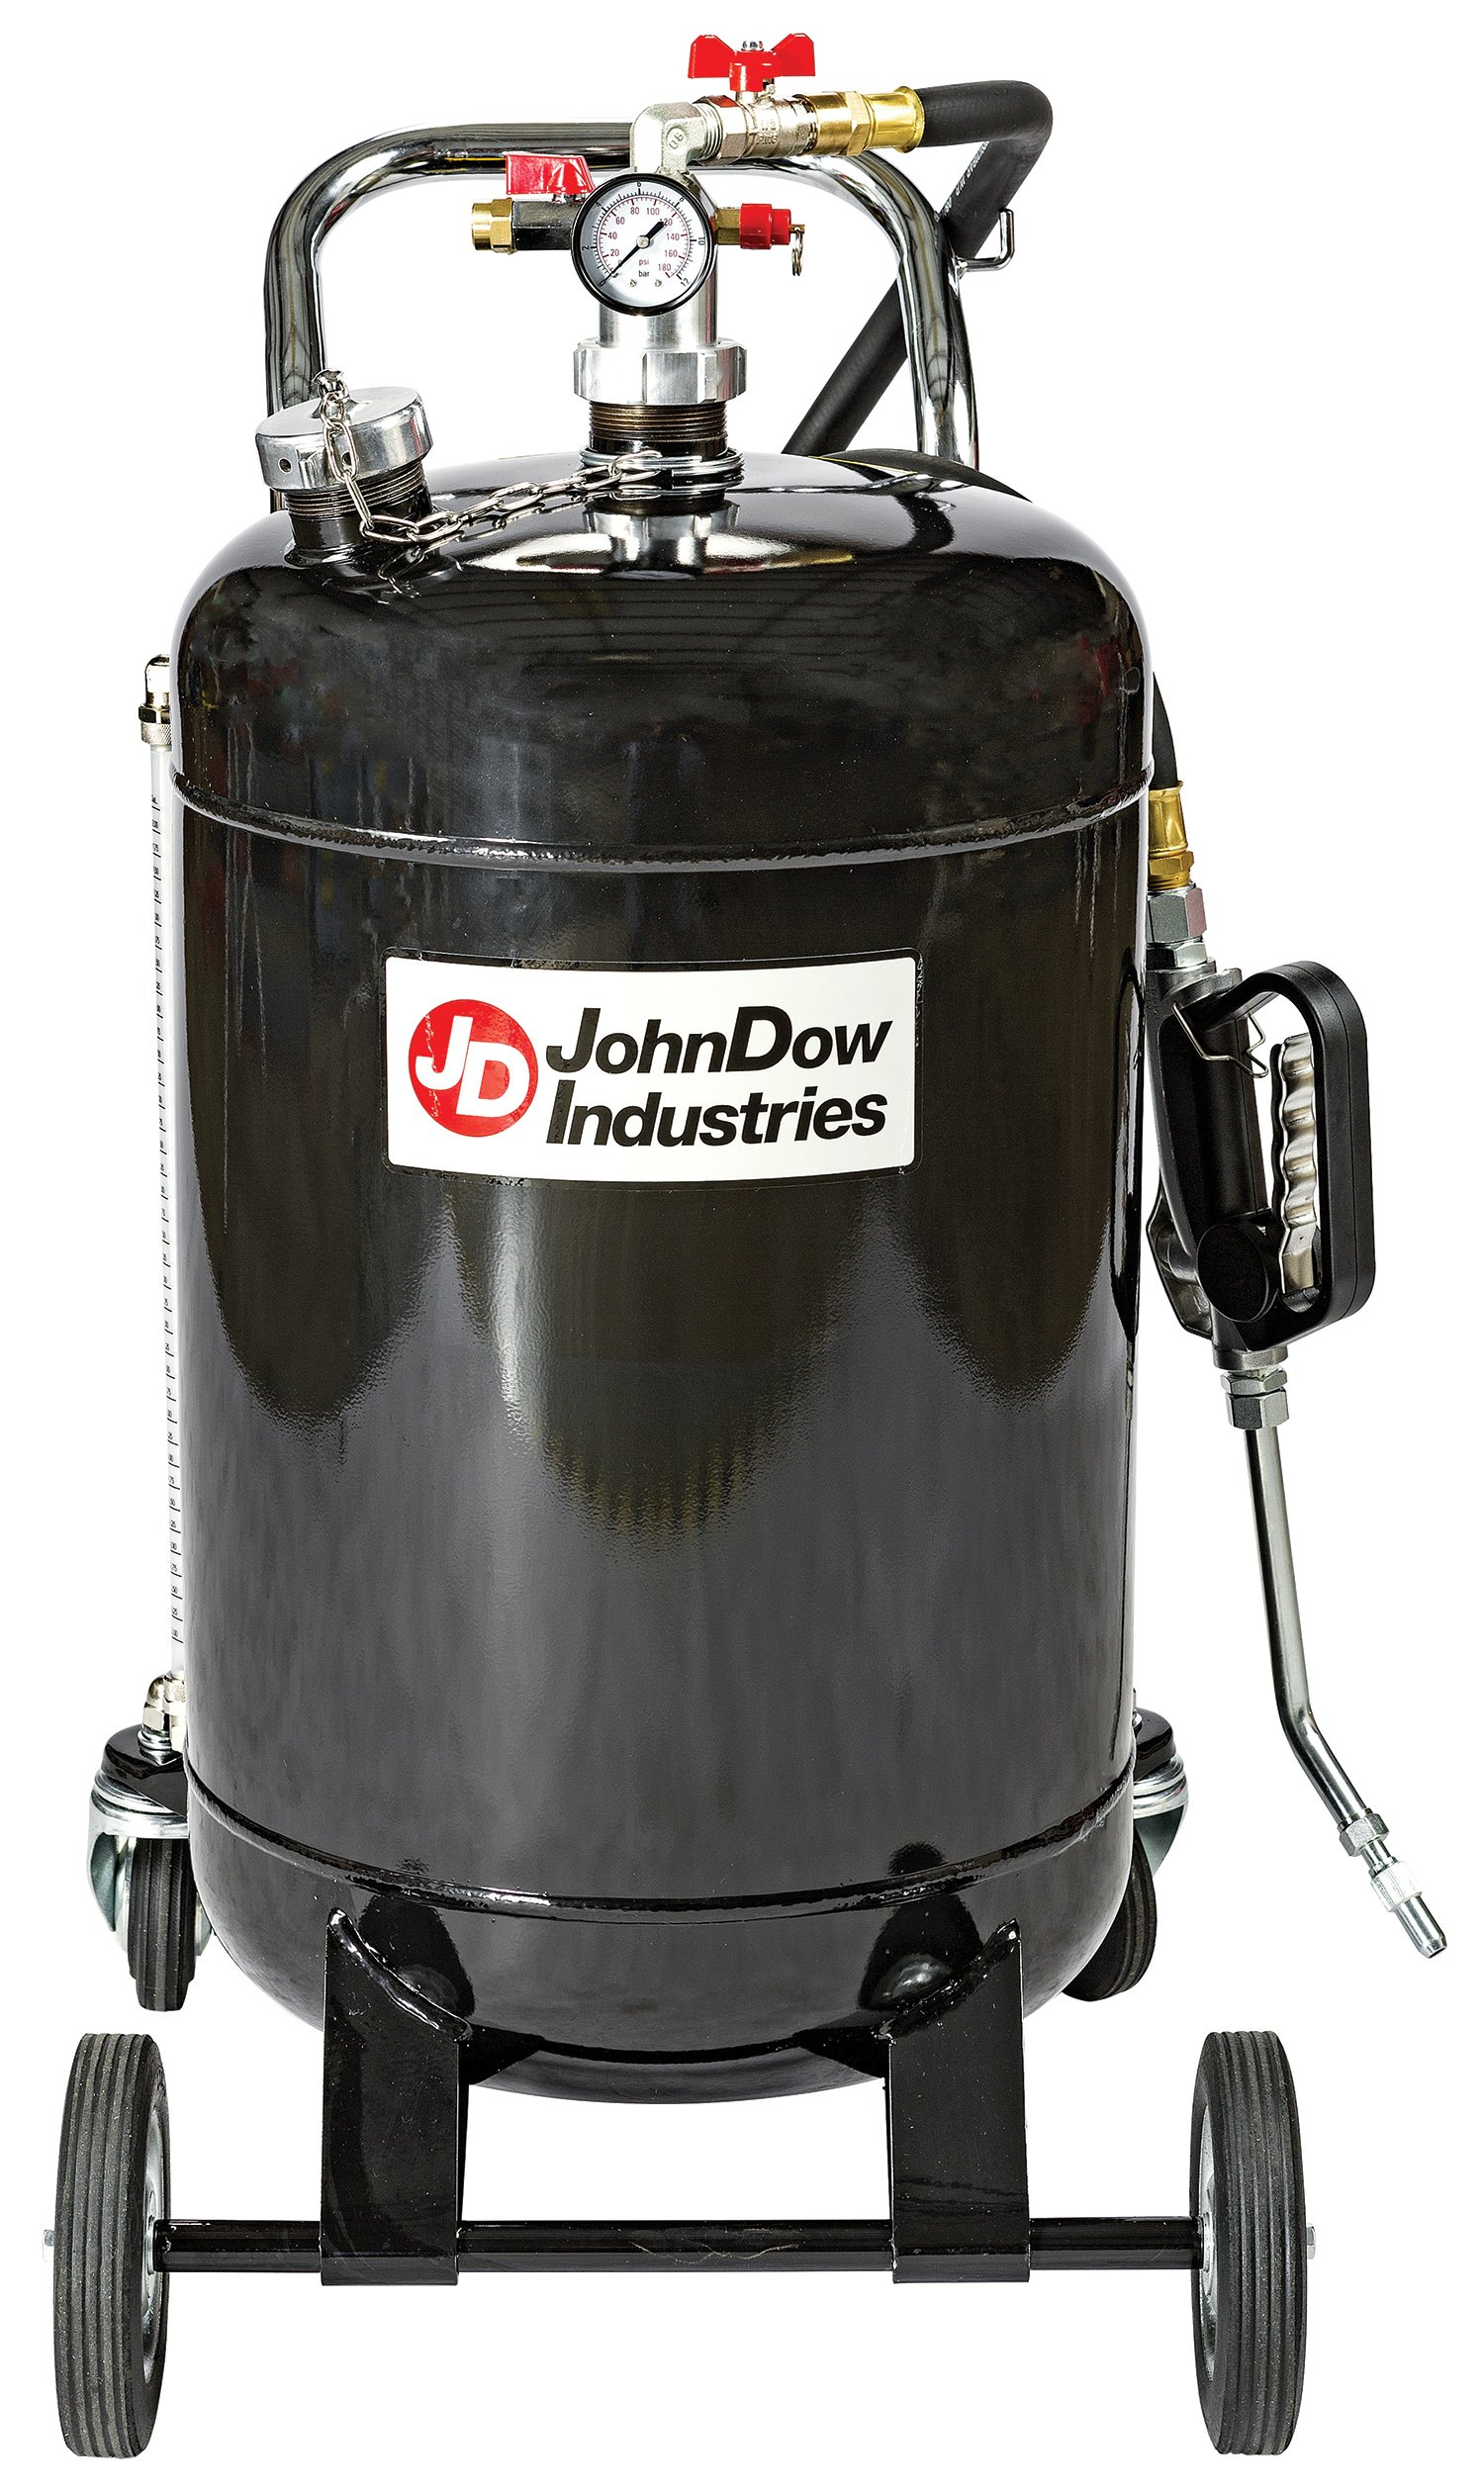 John Dow Industries JDI-15DP-A Portable Oil and Fluid Dispenser by JohnDow Industries